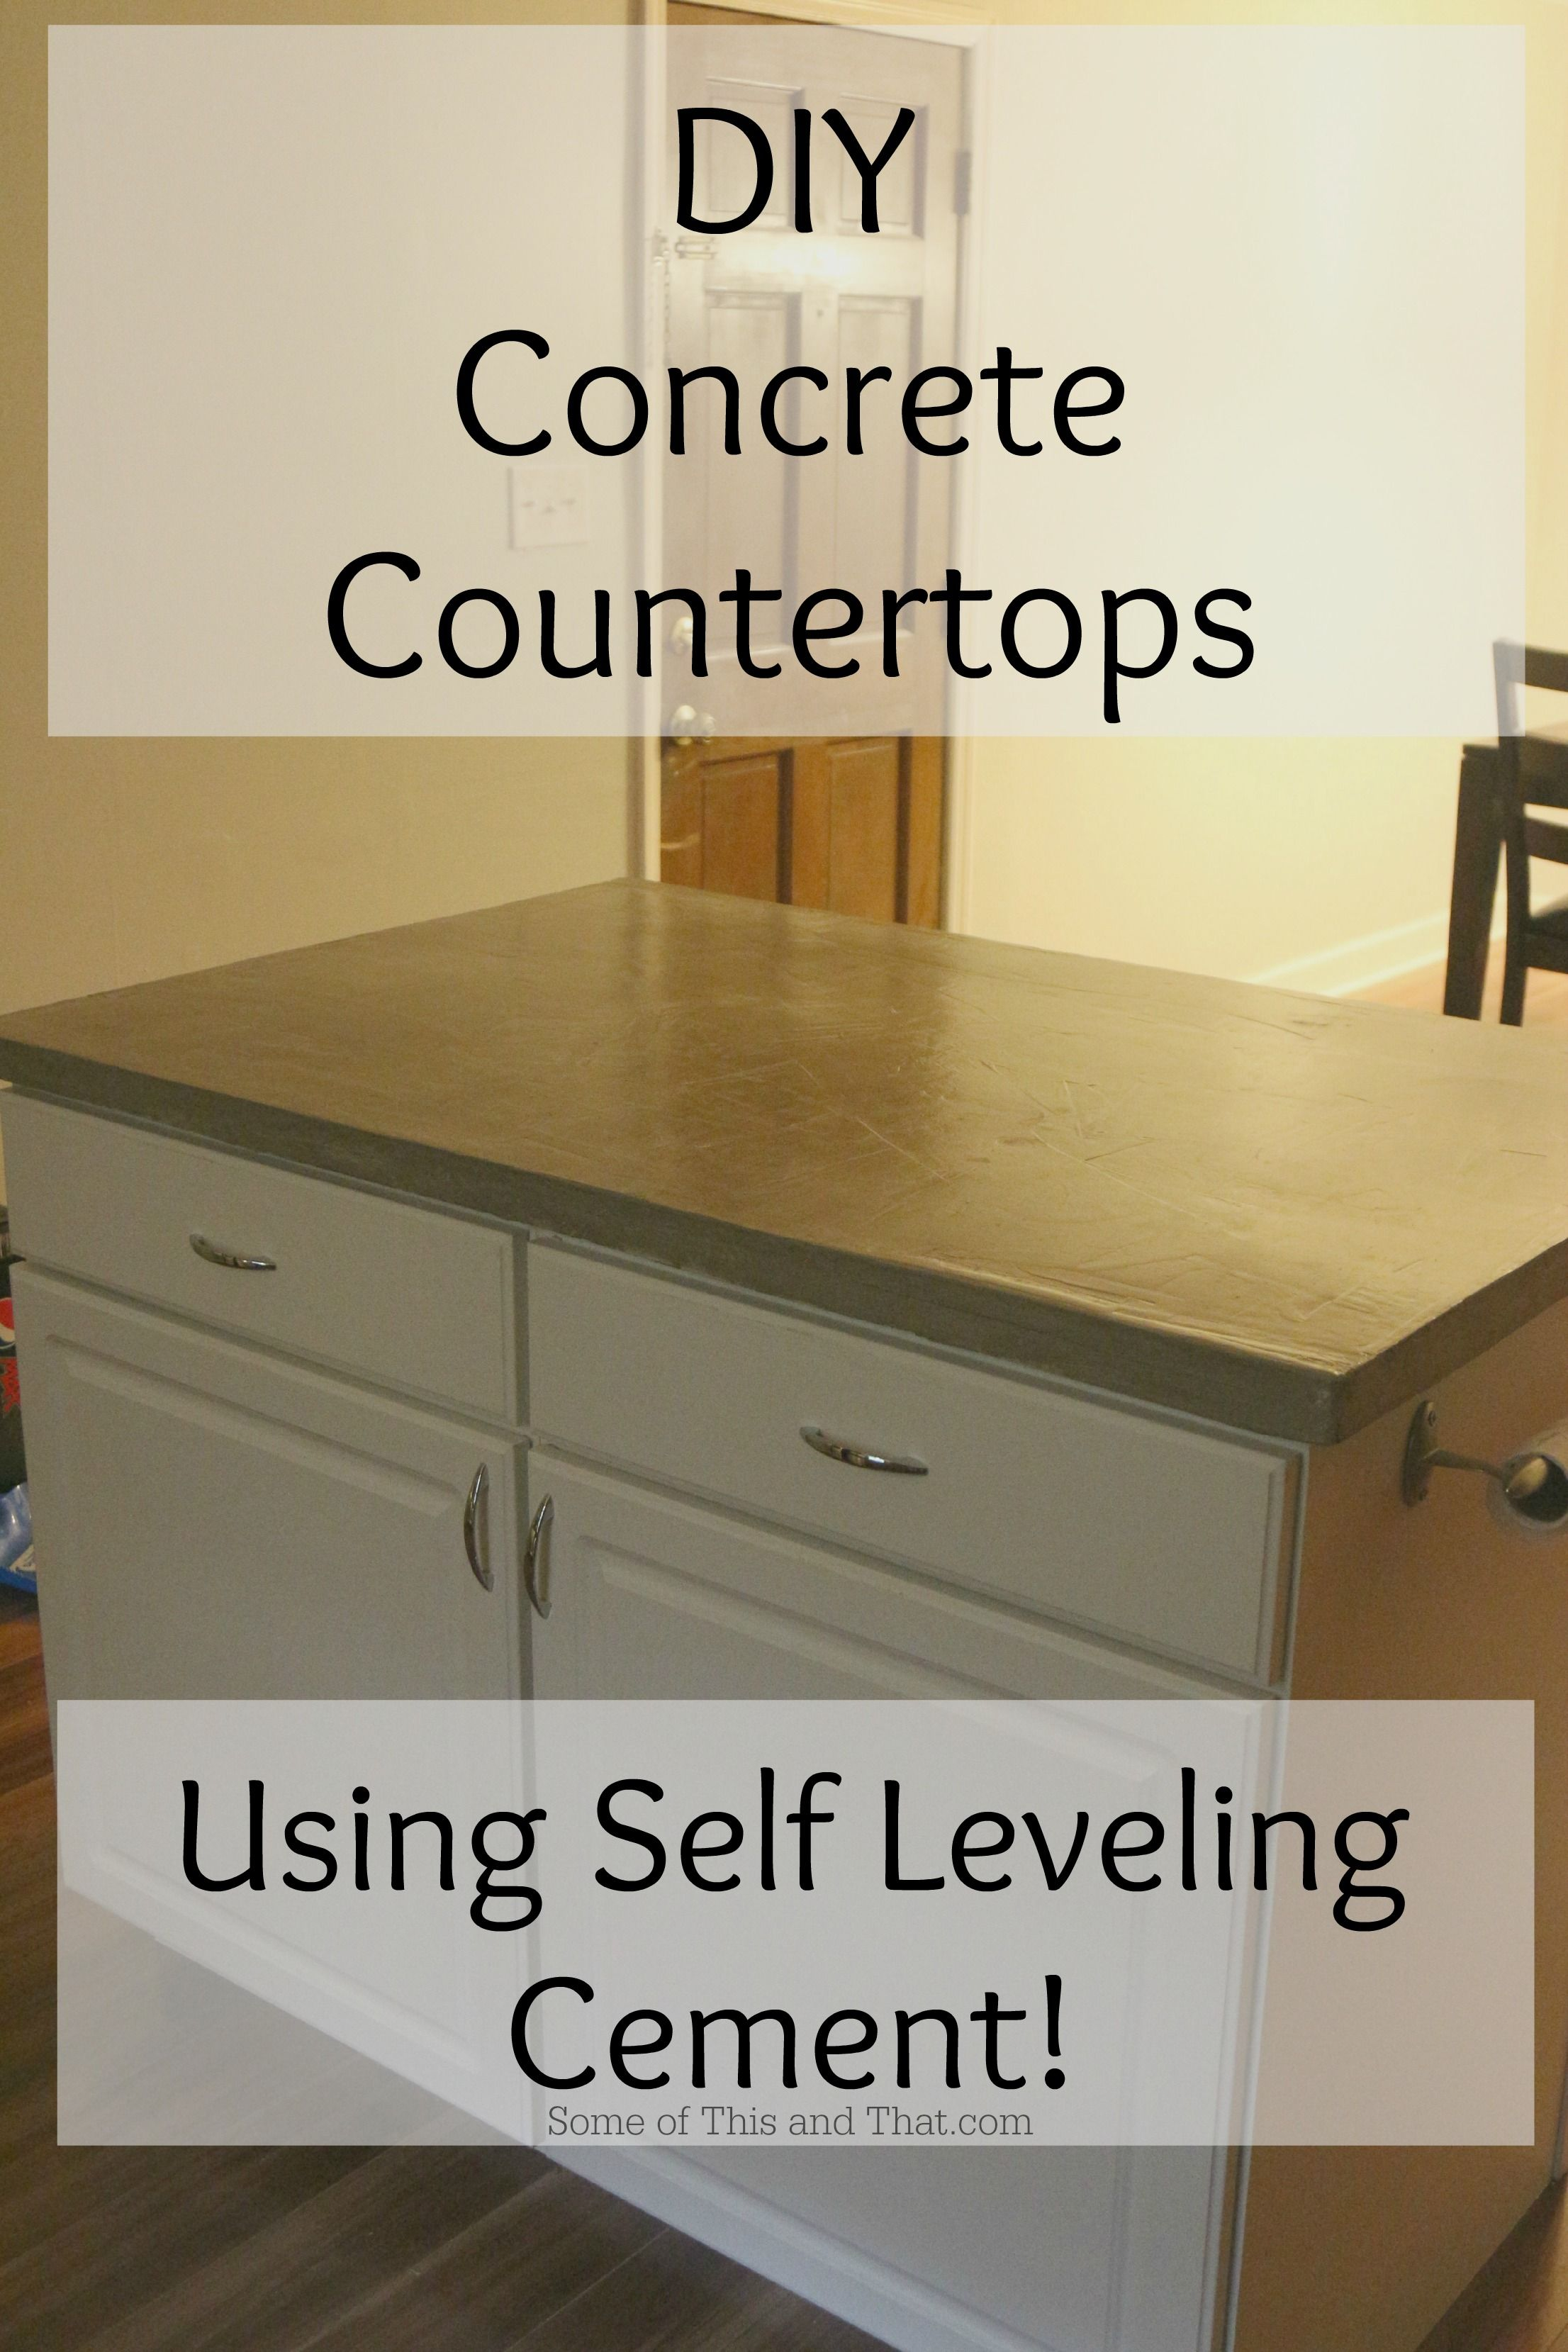 DIY Concrete Countertops Using Self Leveling Cement | Gips ...